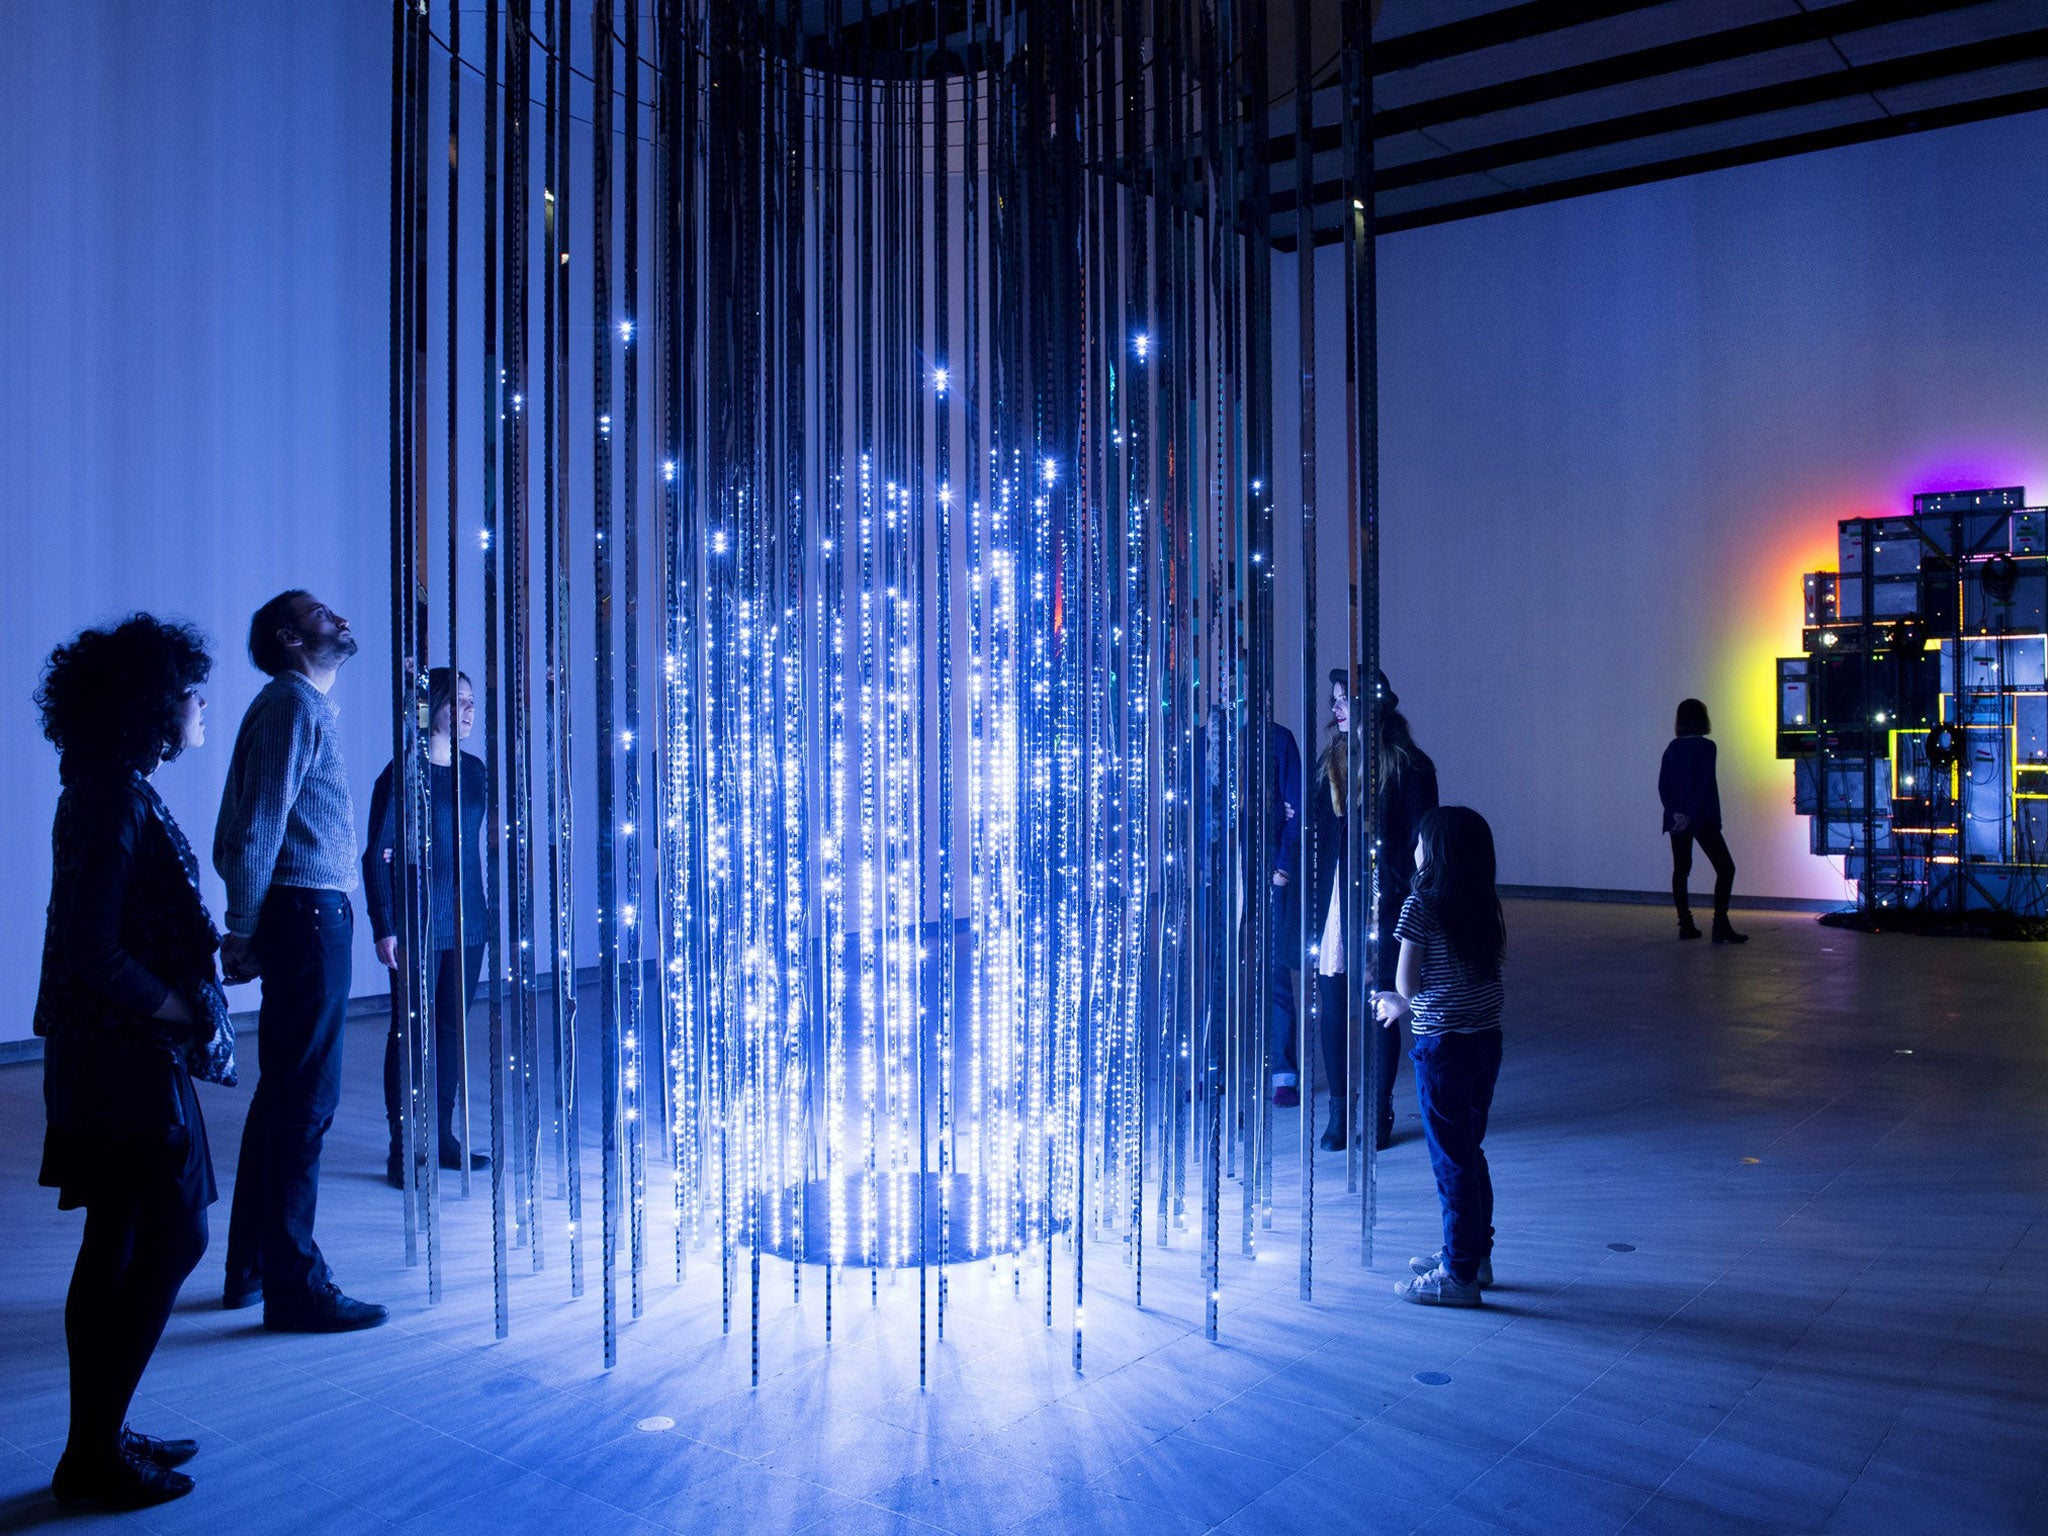 Art review: Light Show - Sometimes it pays to look into the light | The Independent